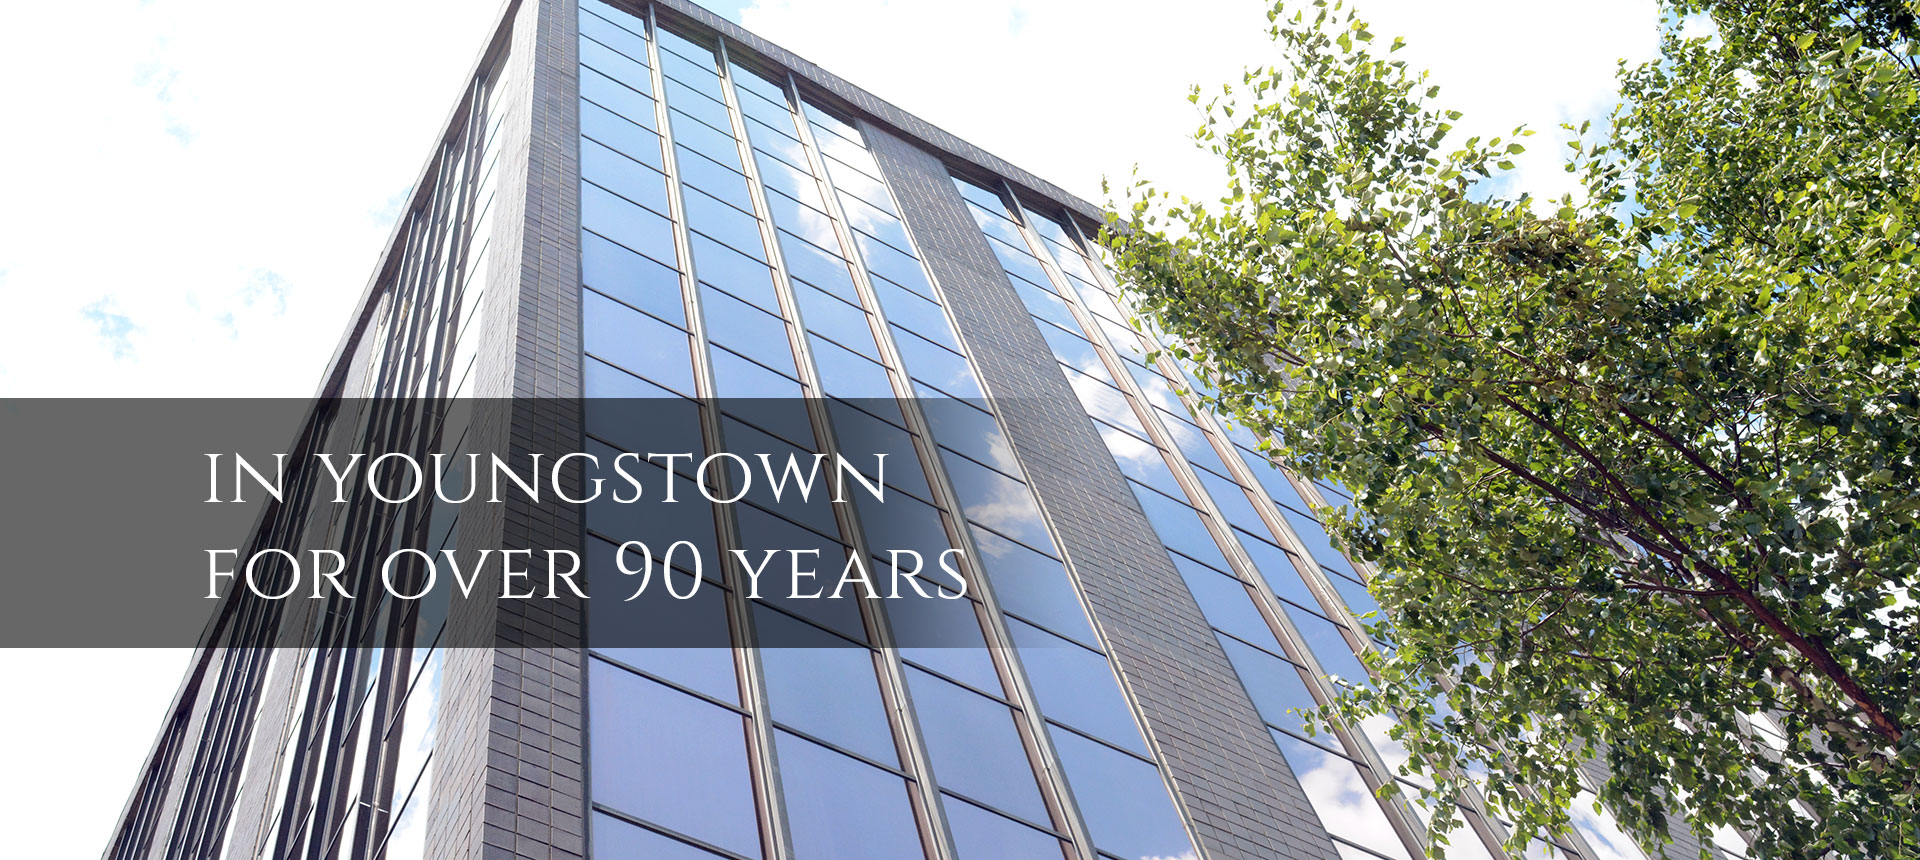 In Youngstown for over 90 years